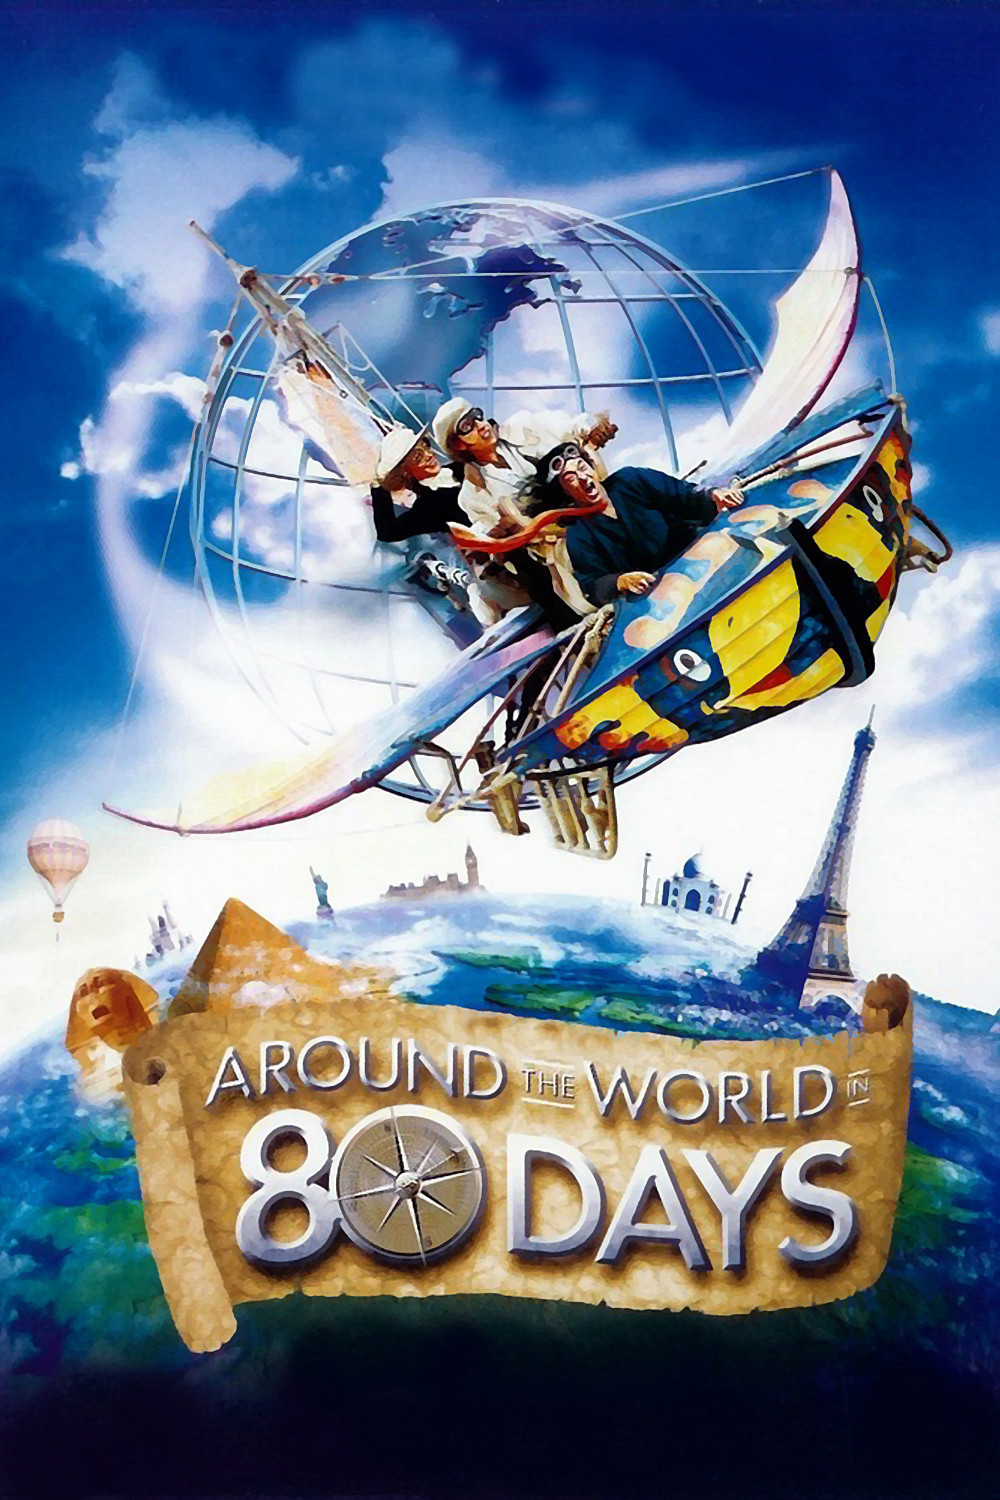 Monday Night Movie: Around the World in 80 Days